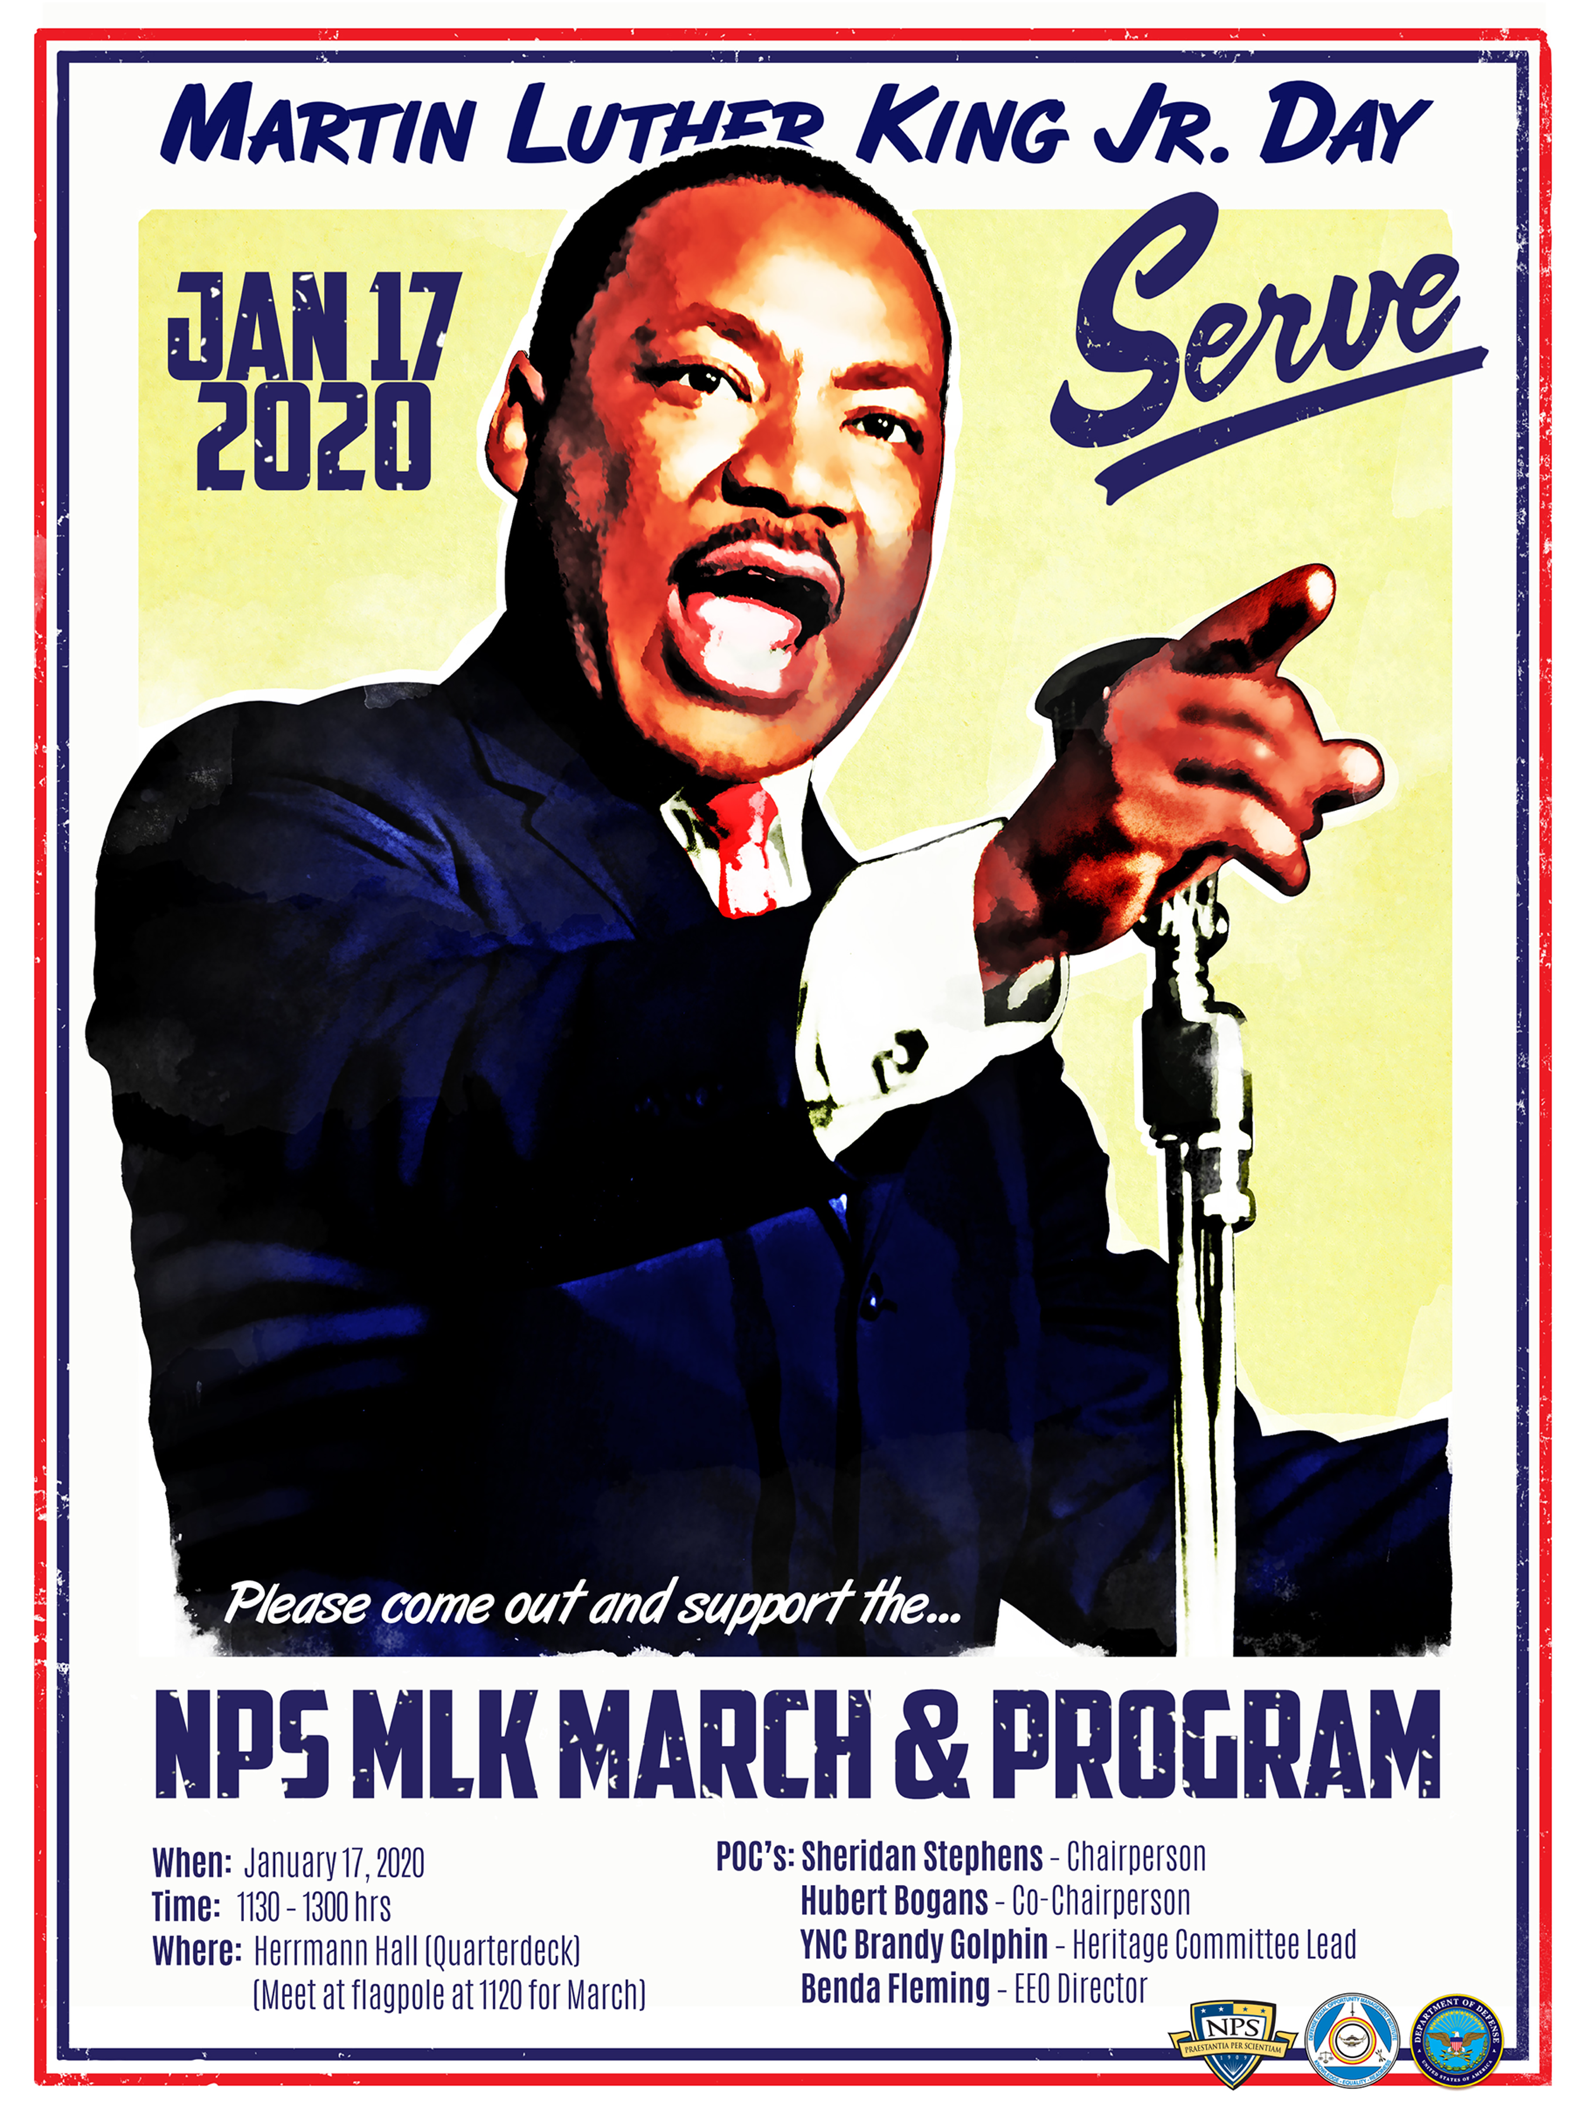 Martin Luther King Jr. Day - January 17, 2020